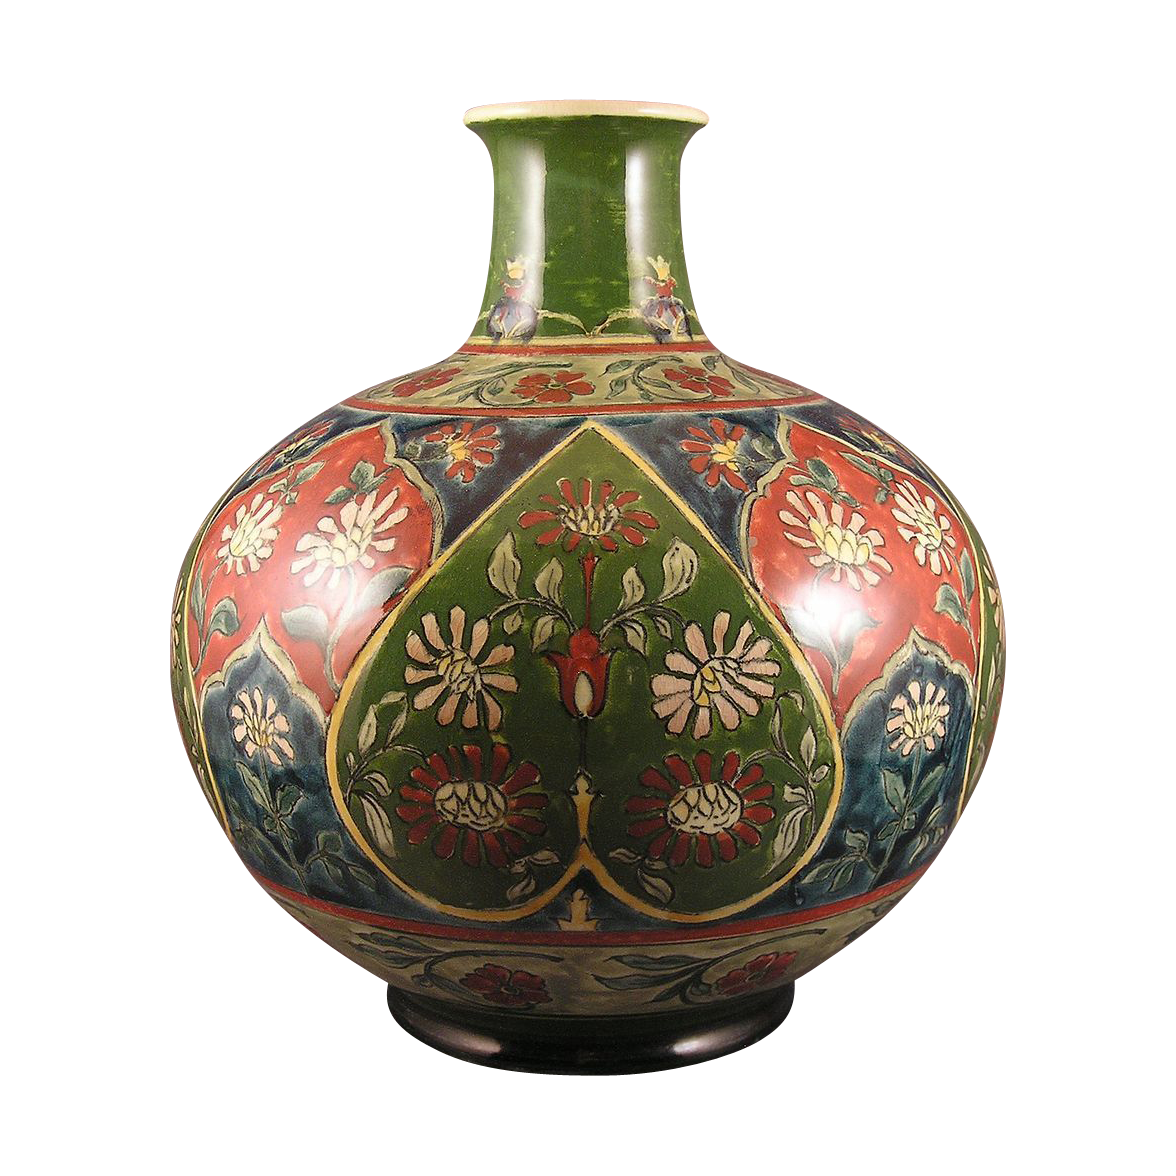 Royal Bonn Germany Art Nouveau Old Dutch Vase C 1890 1923 From Darkflowers On Ruby Lane